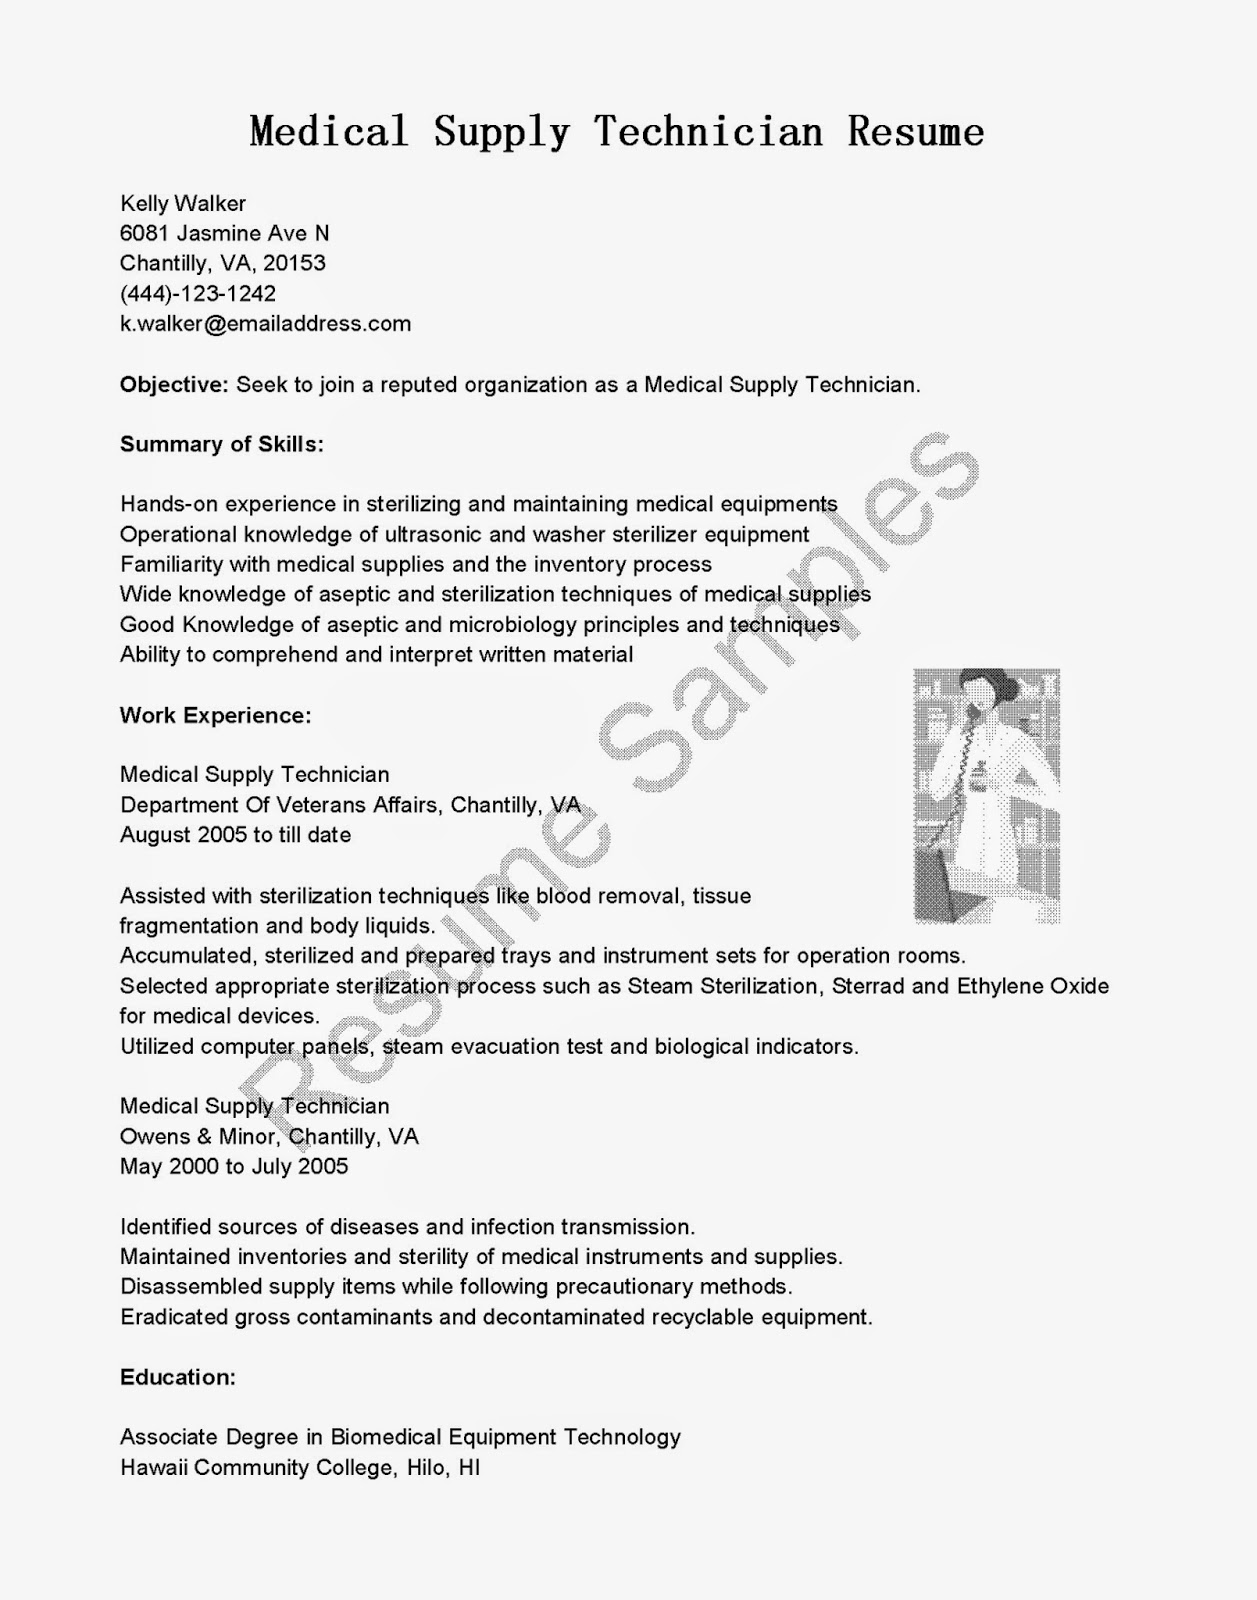 Resume Samples Medical Supply Technician Sample